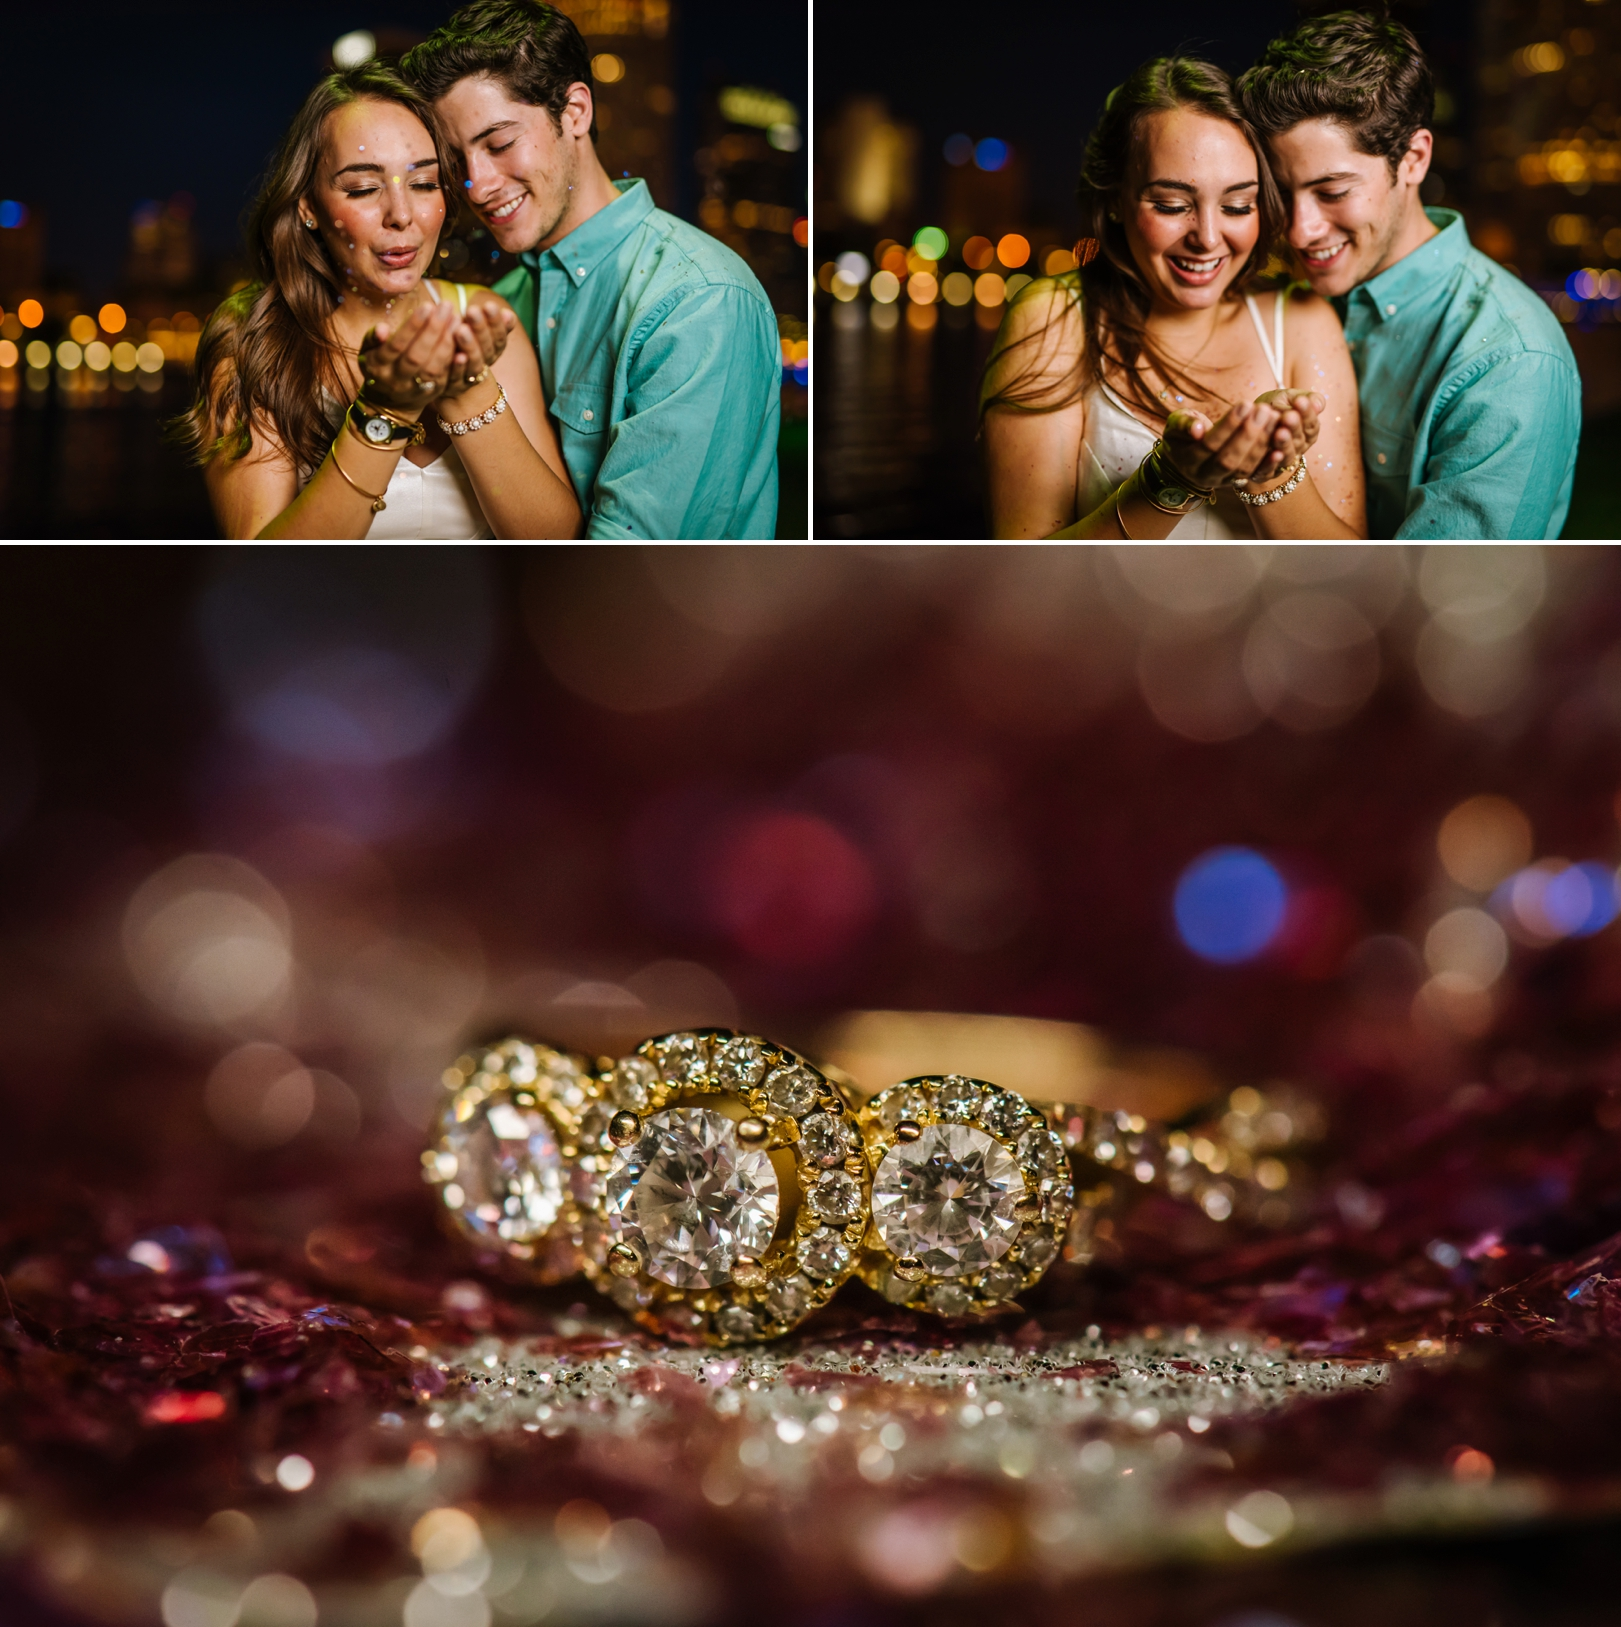 ashlee-hamon-photography-tampa-buddy-brew-coffee-shop-engagement_0010.jpg